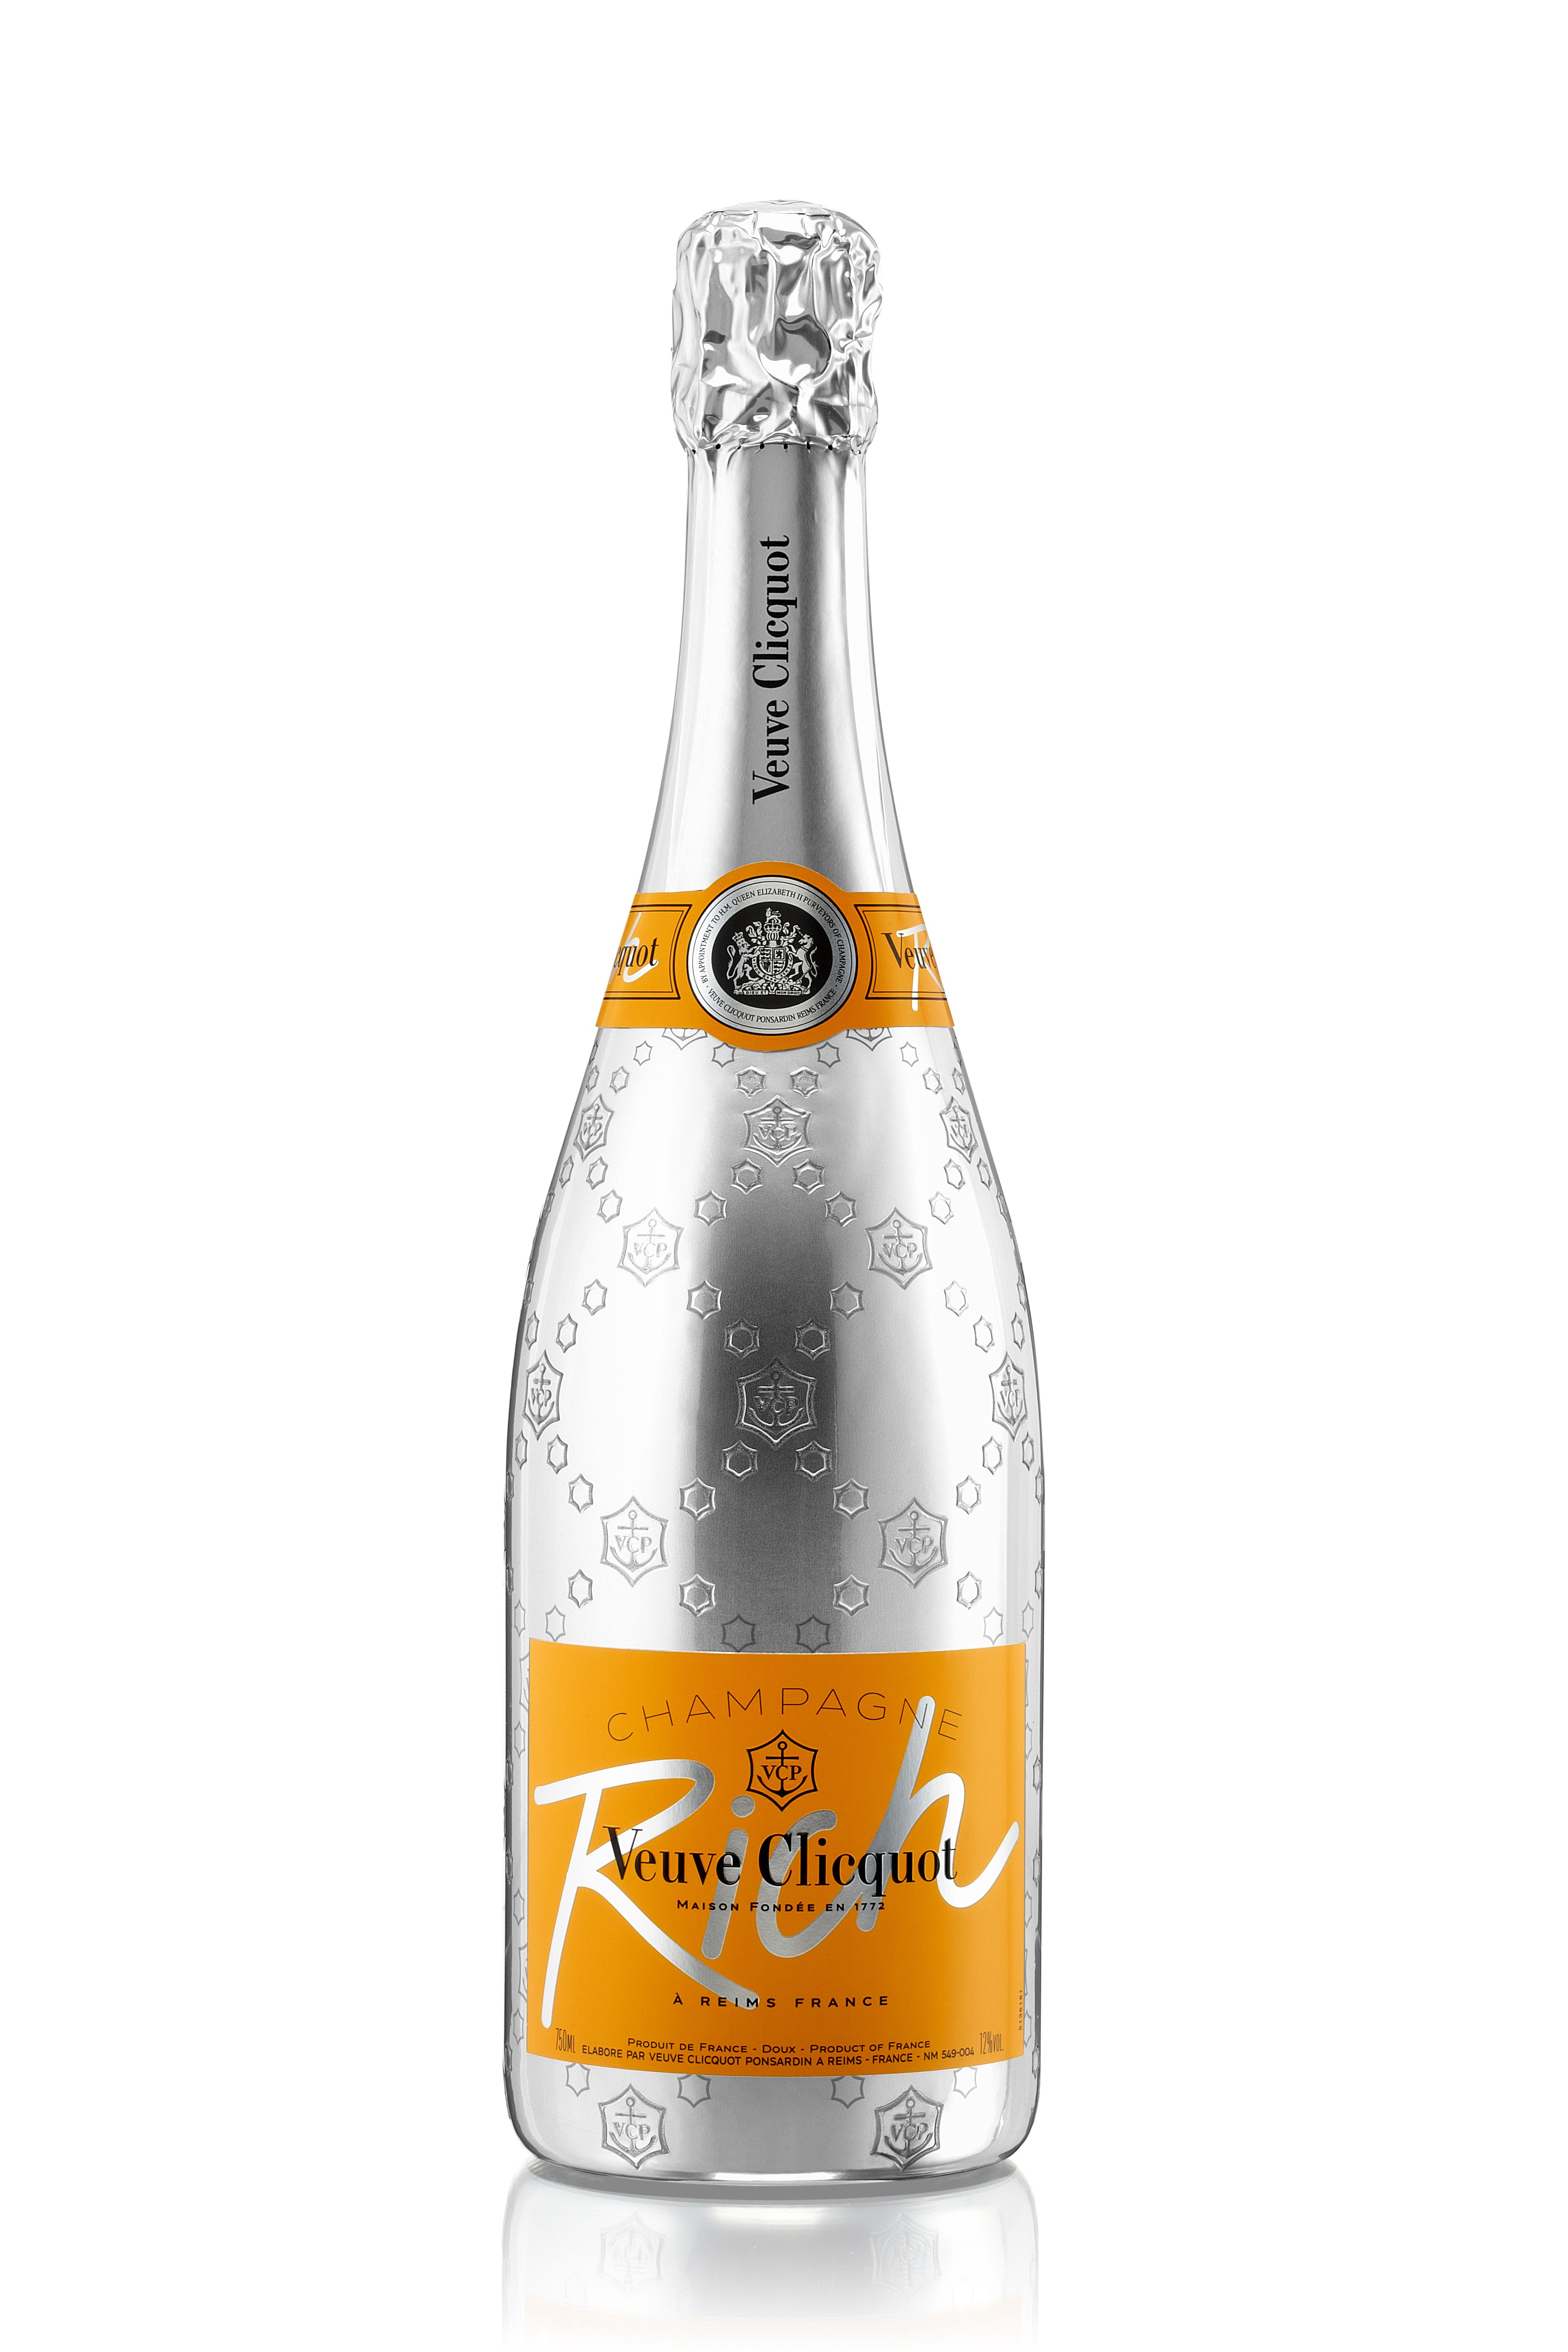 """<p>Inspired by mixology, Clicquot Rich is the newest champagne from the brand. Serve it overice and mixed with fresh ingredients likefruits, vegetables, teas and herbs as an alternative to rosé.<span class=""""redactor-invisible-space"""" data-verified=""""redactor"""" data-redactor-tag=""""span"""" data-redactor-class=""""redactor-invisible-space""""></span></p><p><em data-redactor-tag=""""em"""" data-verified=""""redactor"""">Veuve Clicquot Rich<span class=""""redactor-invisible-space"""" data-verified=""""redactor"""" data-redactor-tag=""""span"""" data-redactor-class=""""redactor-invisible-space"""">,</span>$65;</em><a href=""""http://www.grandwinecellar.com/sku22924_?gclid=CJvjuMq53c4CFQyCaQod7HoHww""""><em data-redactor-tag=""""em"""" data-verified=""""redactor"""">grandwinecellar.com</em></a><span class=""""redactor-invisible-space"""" data-verified=""""redactor"""" data-redactor-tag=""""span"""" data-redactor-class=""""redactor-invisible-space""""></span></p>"""